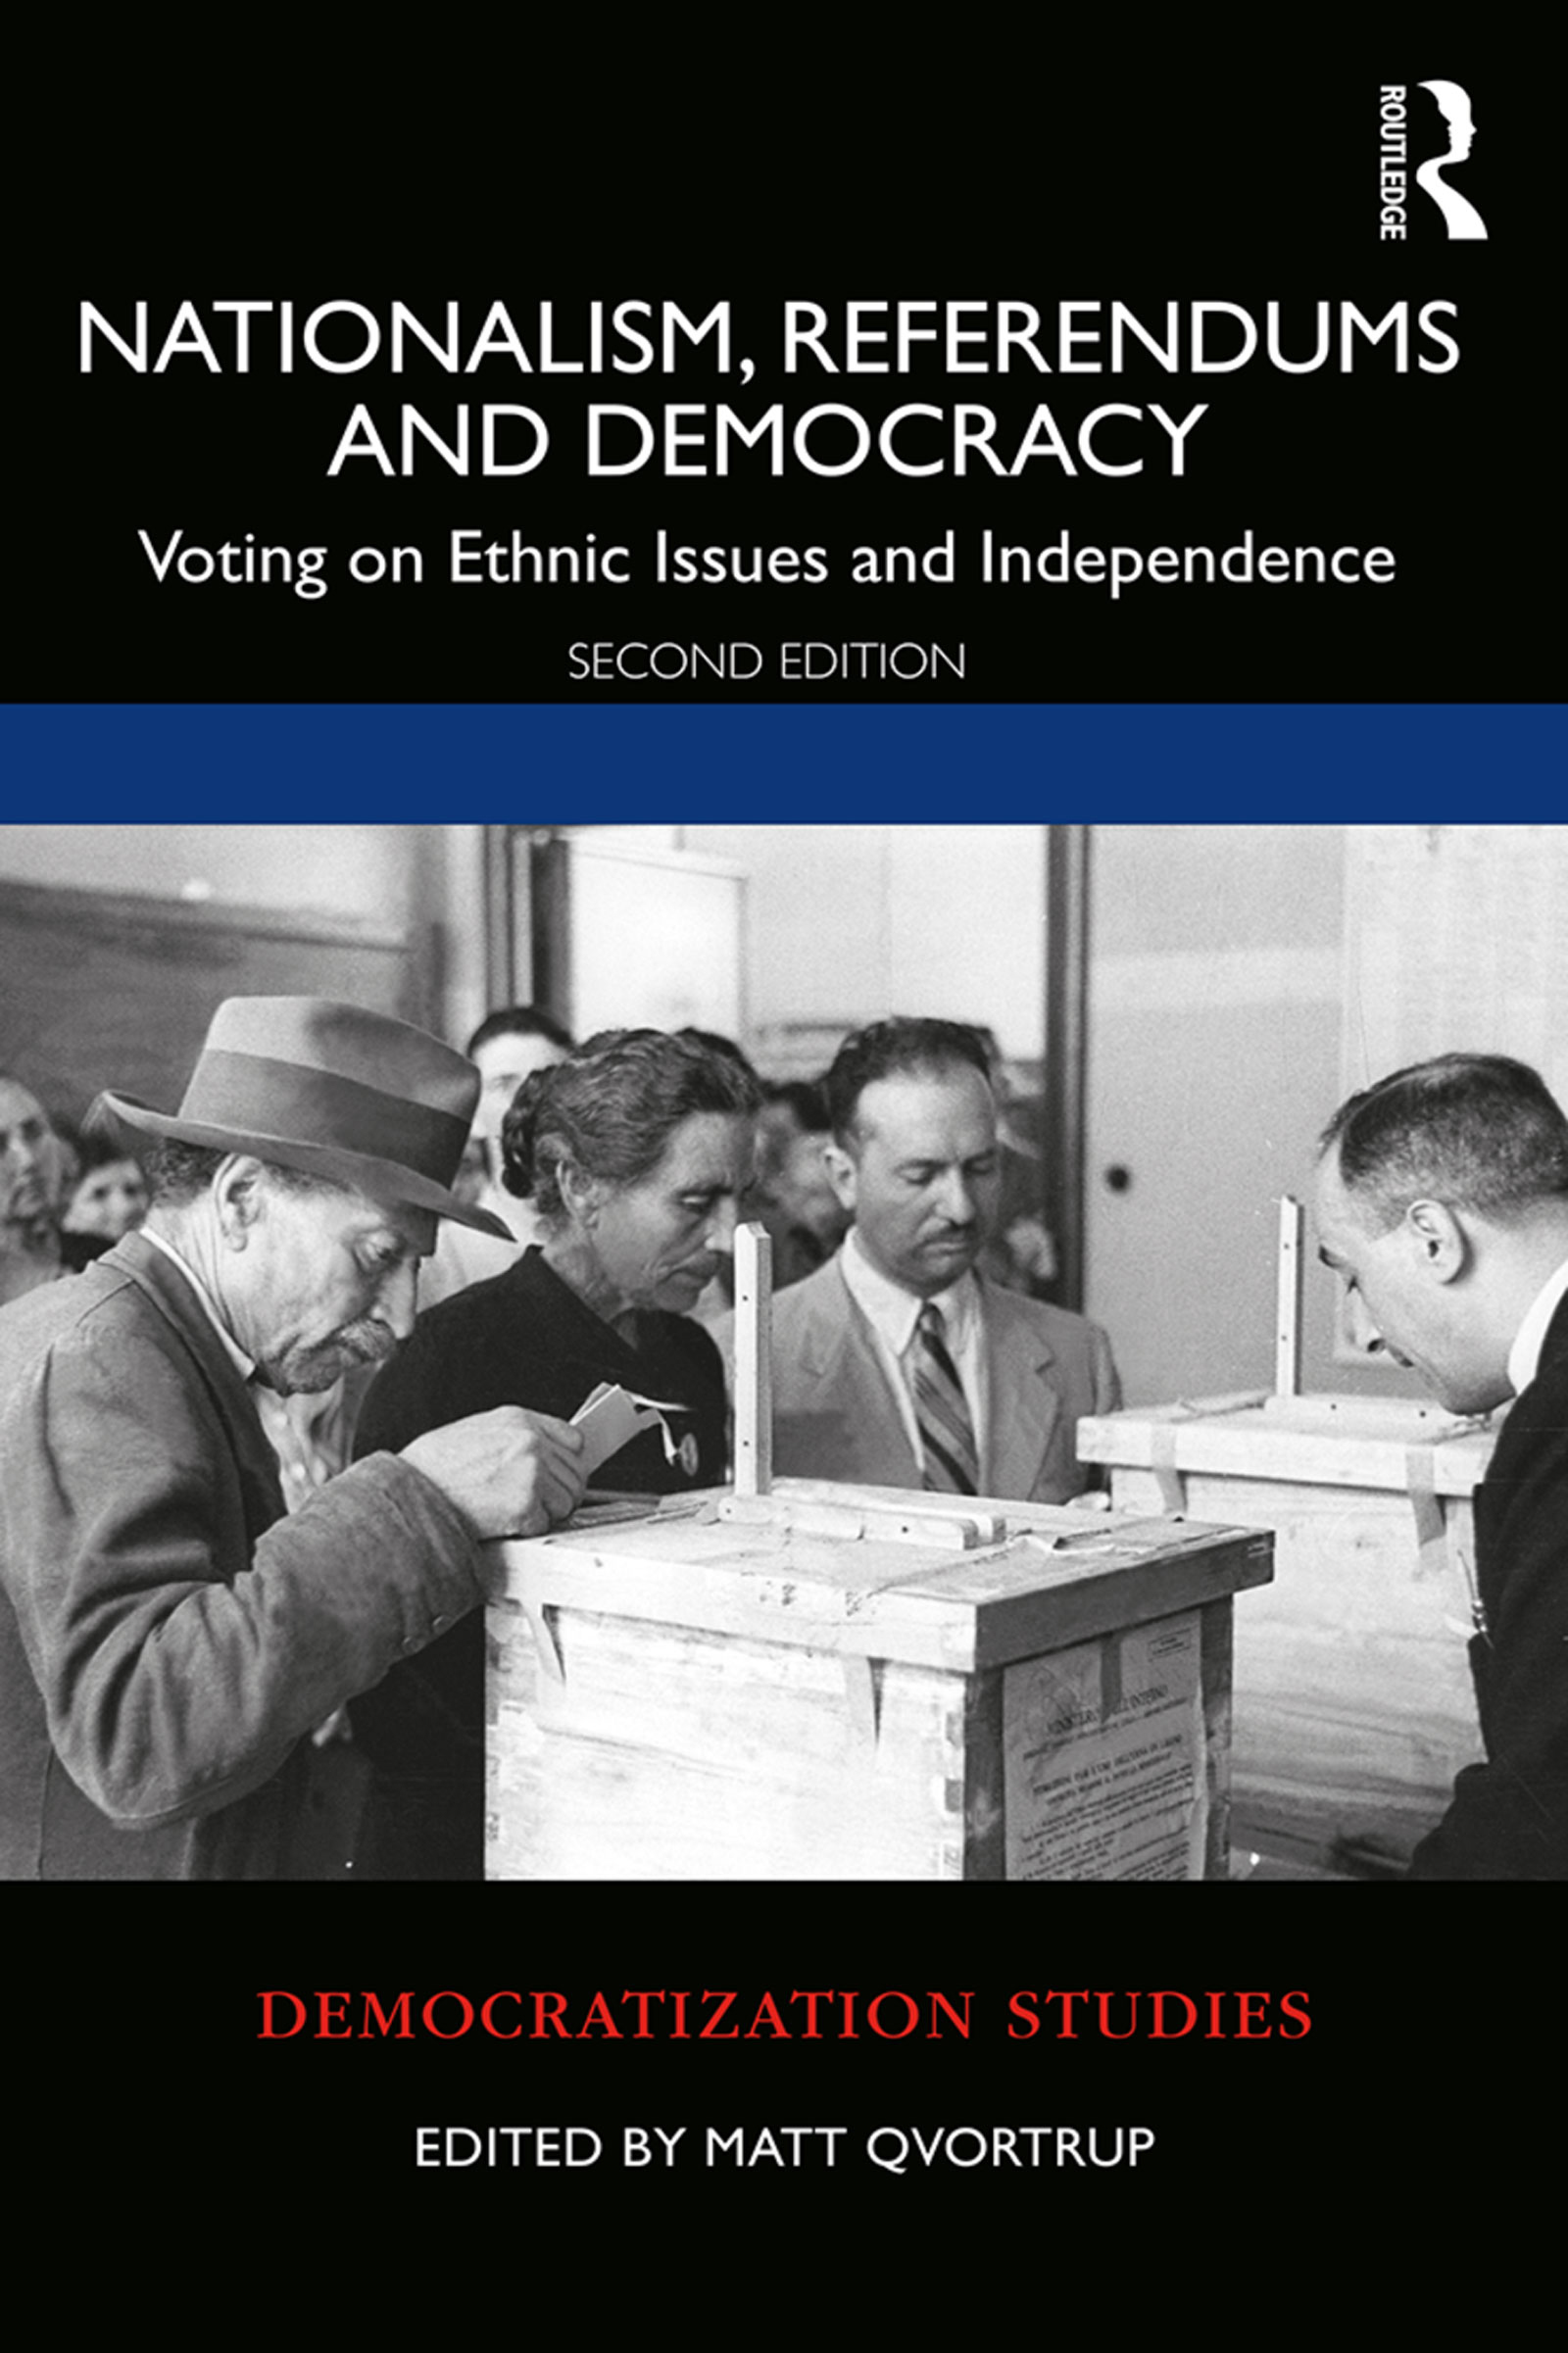 Nationalism, Referendums and Democracy: Voting on Ethnic Issues and Independence book cover